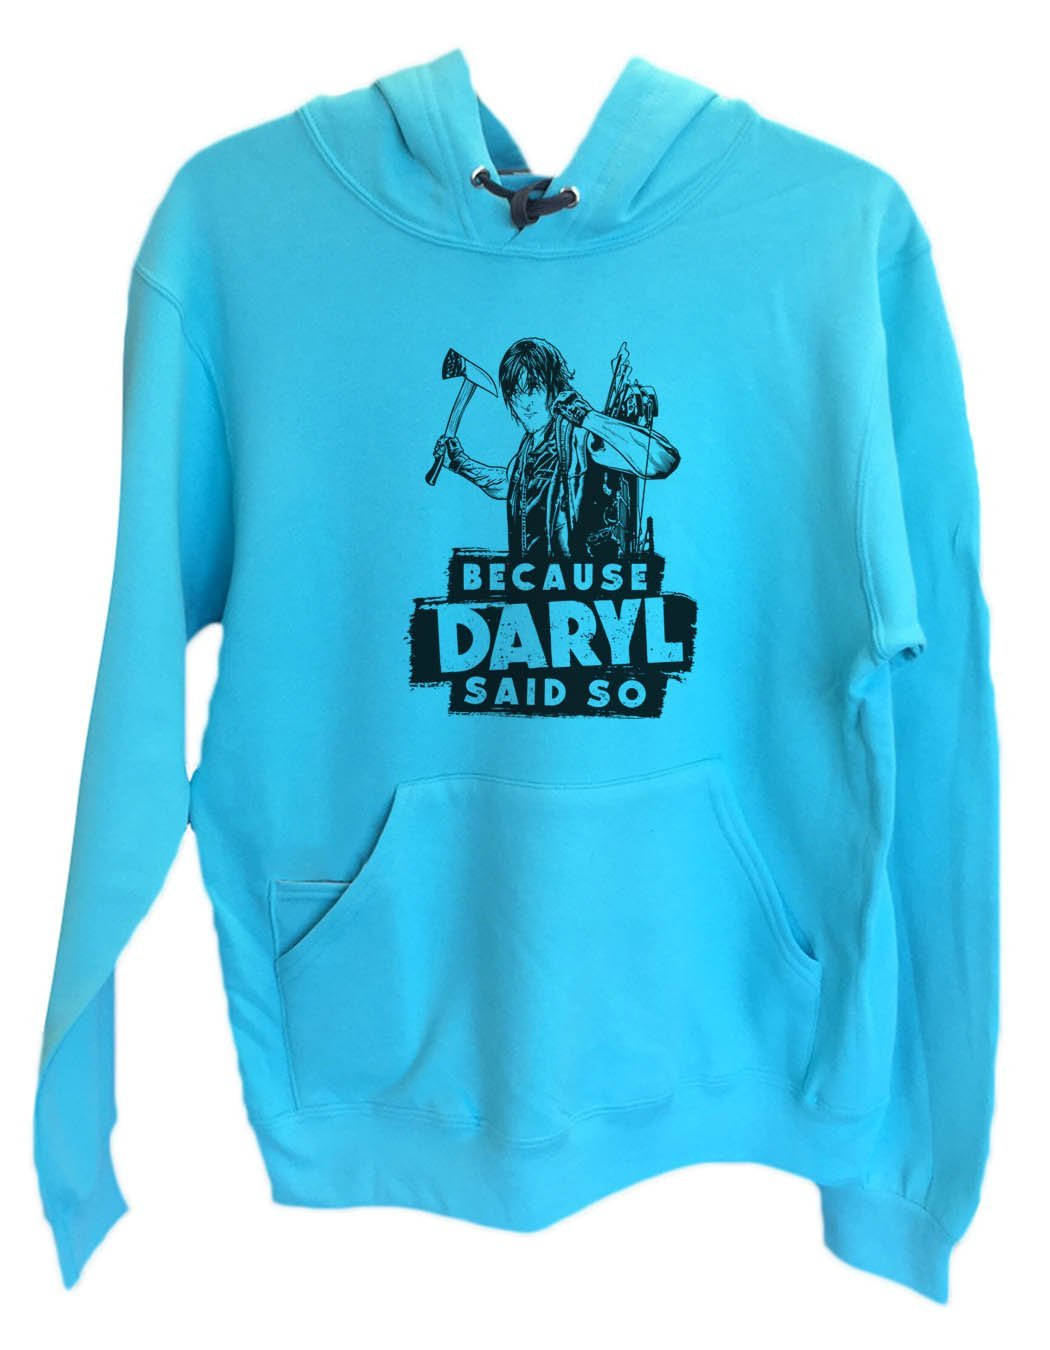 UNISEX HOODIE - Because Daryl Said So - FUNNY MENS AND WOMENS HOODED SWEATSHIRTS - 2310 Funny Shirt Small / Turquoise